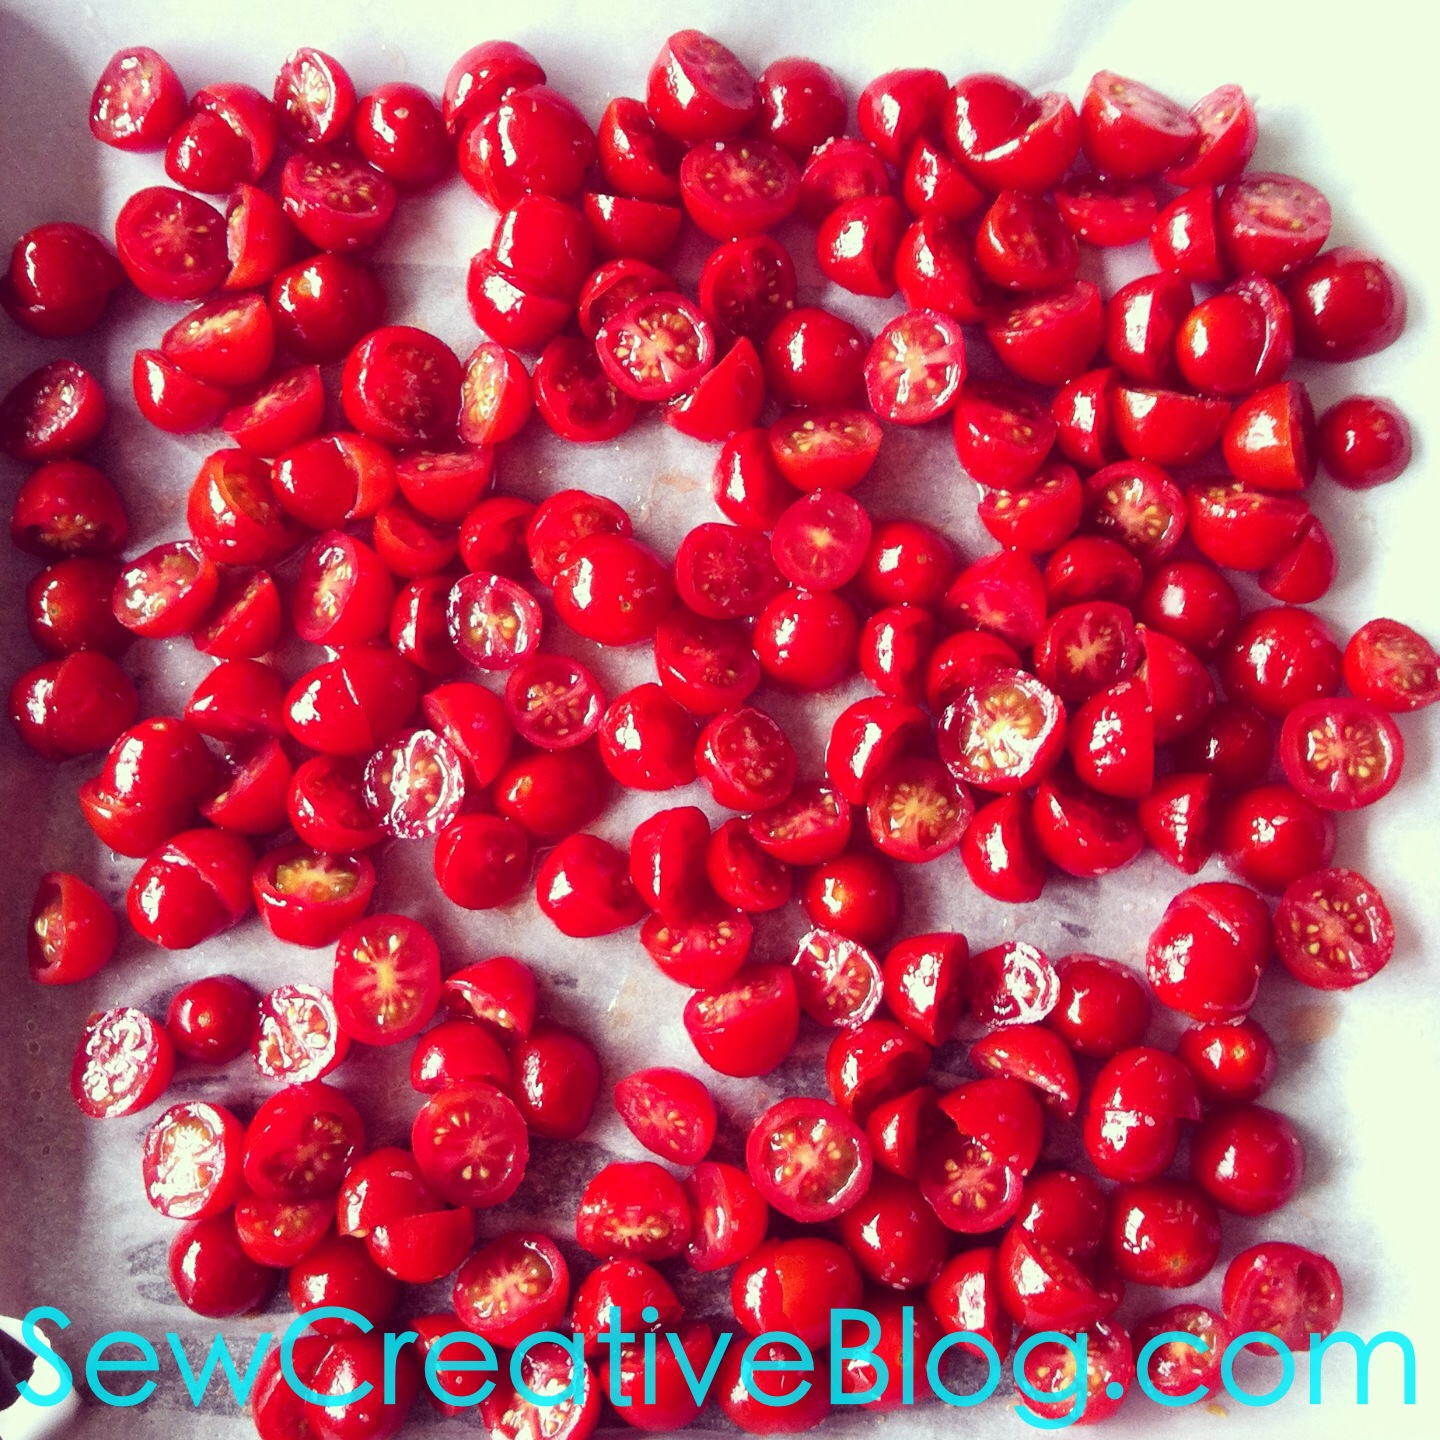 Oven Dried Tomatoes Recipe From Sew Creative Blog like sun dried tomatoes but yummier 1